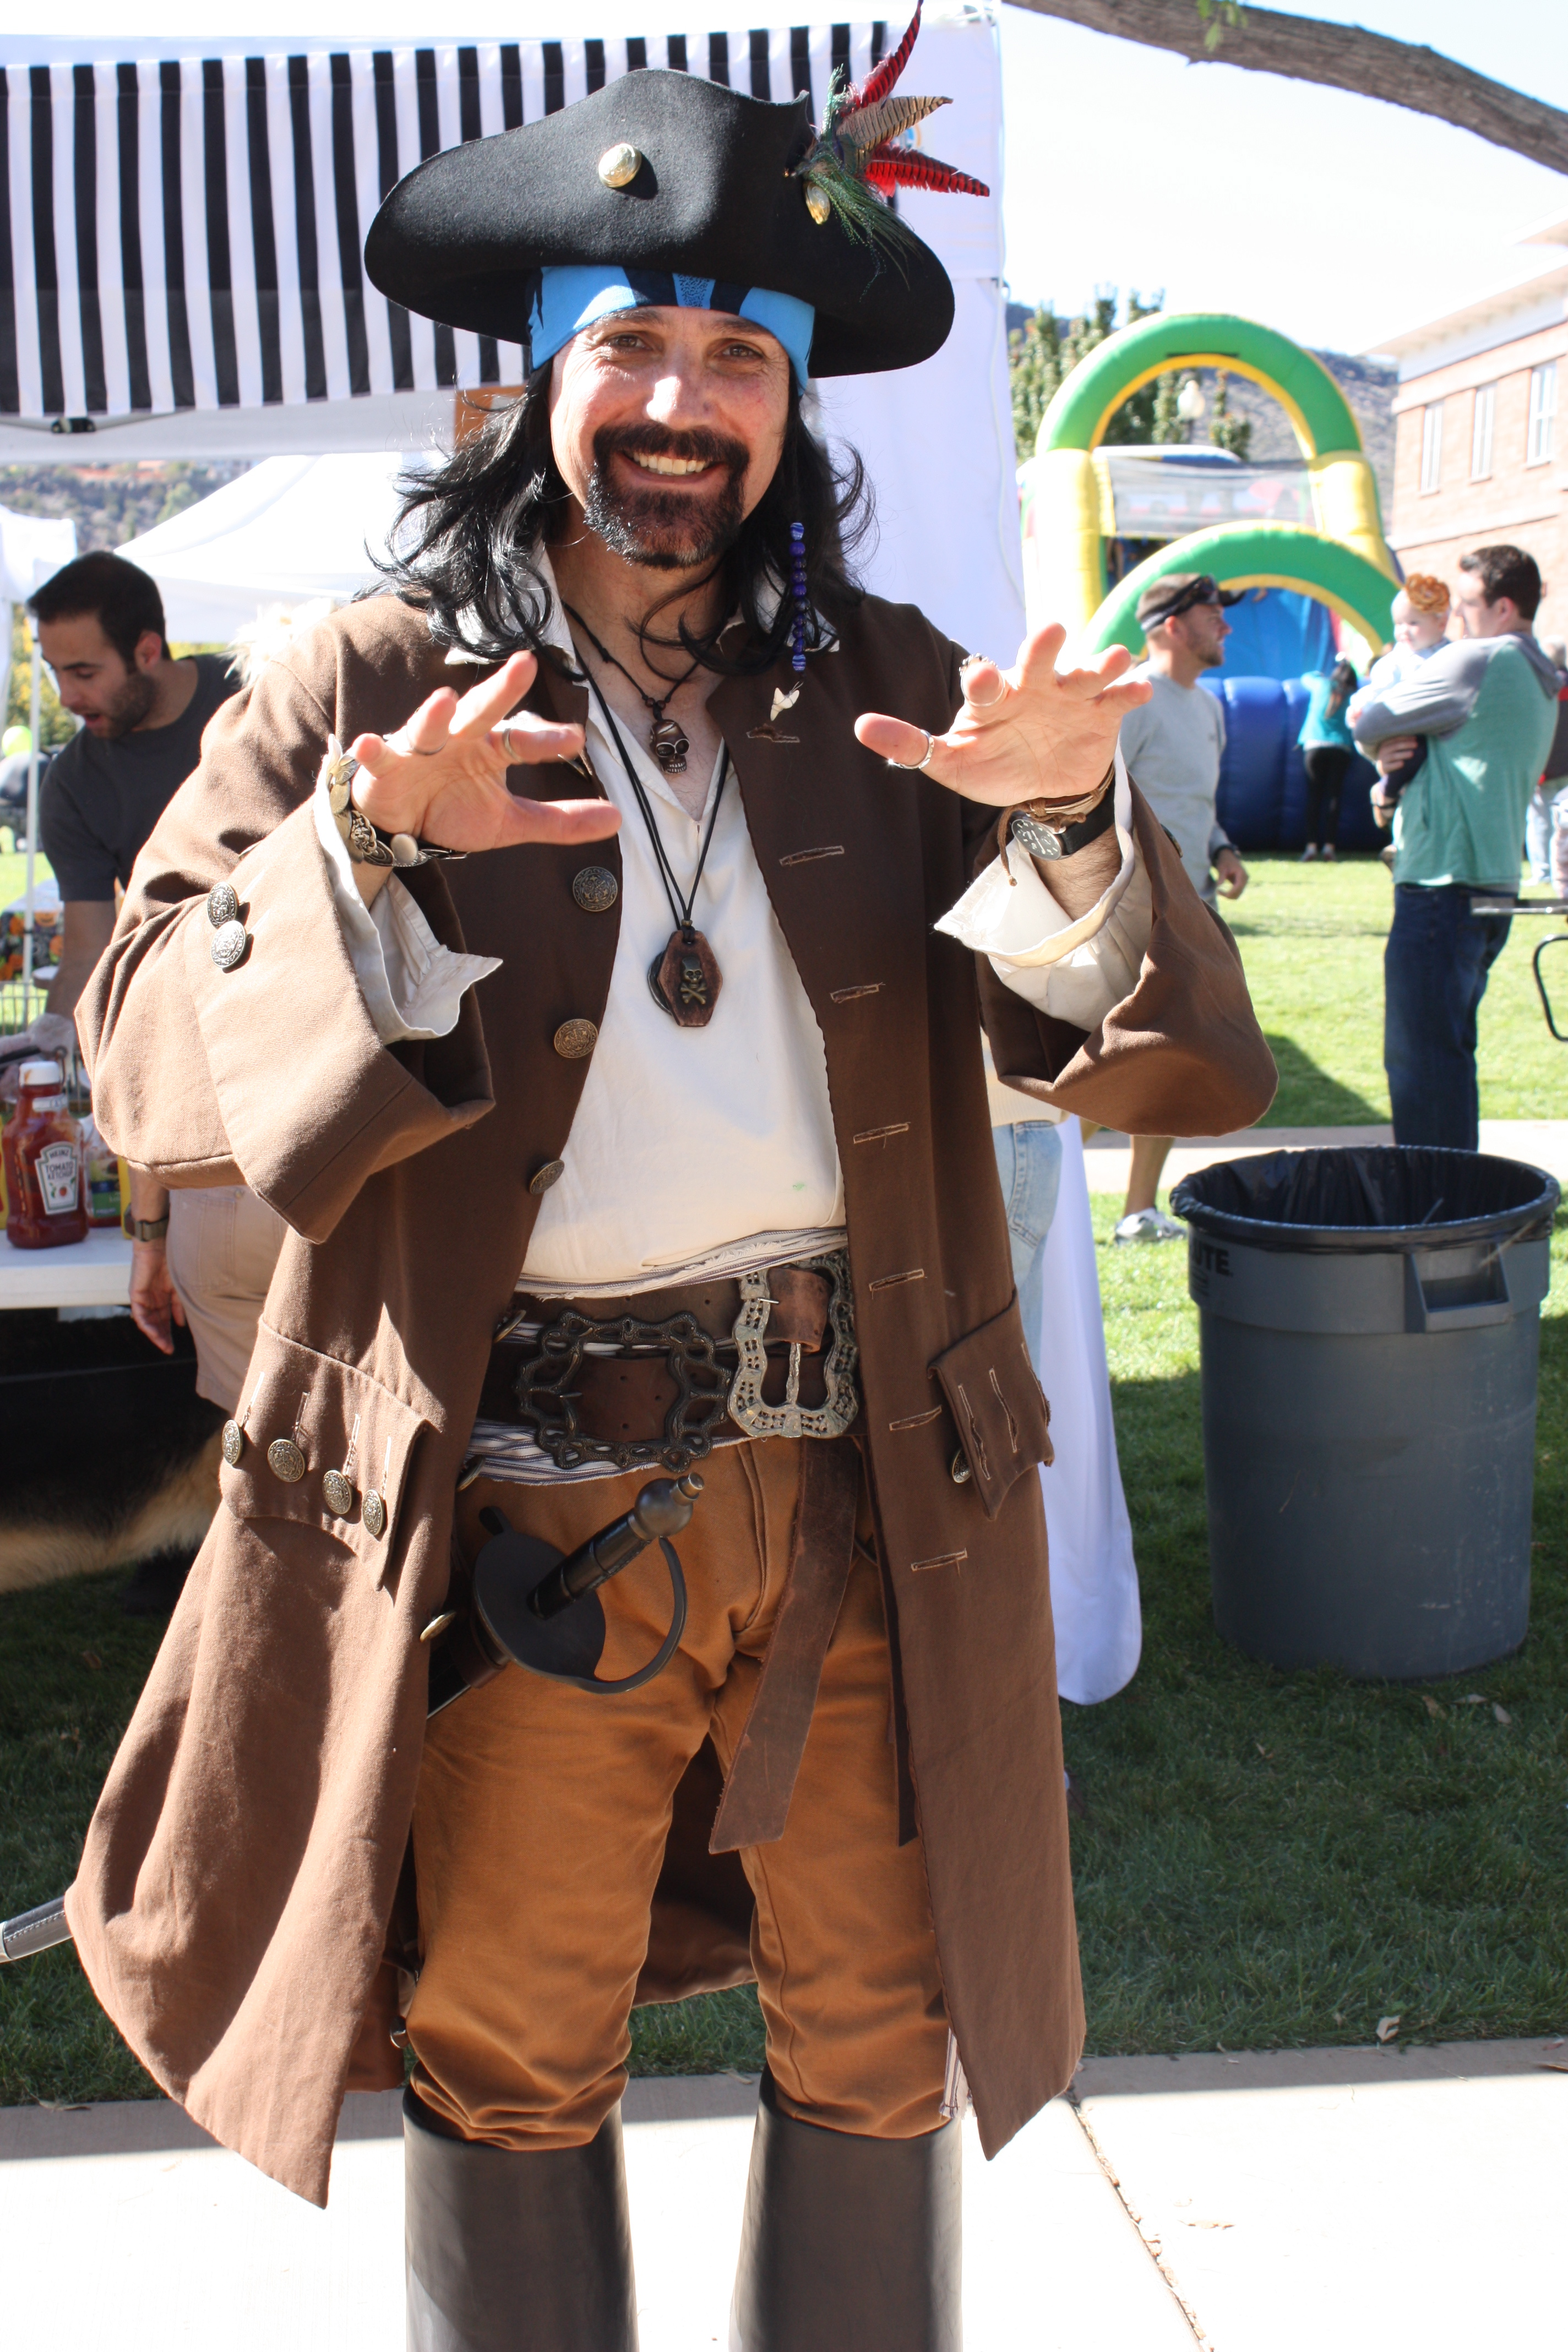 A pirate at the Spooky Town Fair, location and date unspecified | Photo courtesy of spookytownfair.com, St. George News